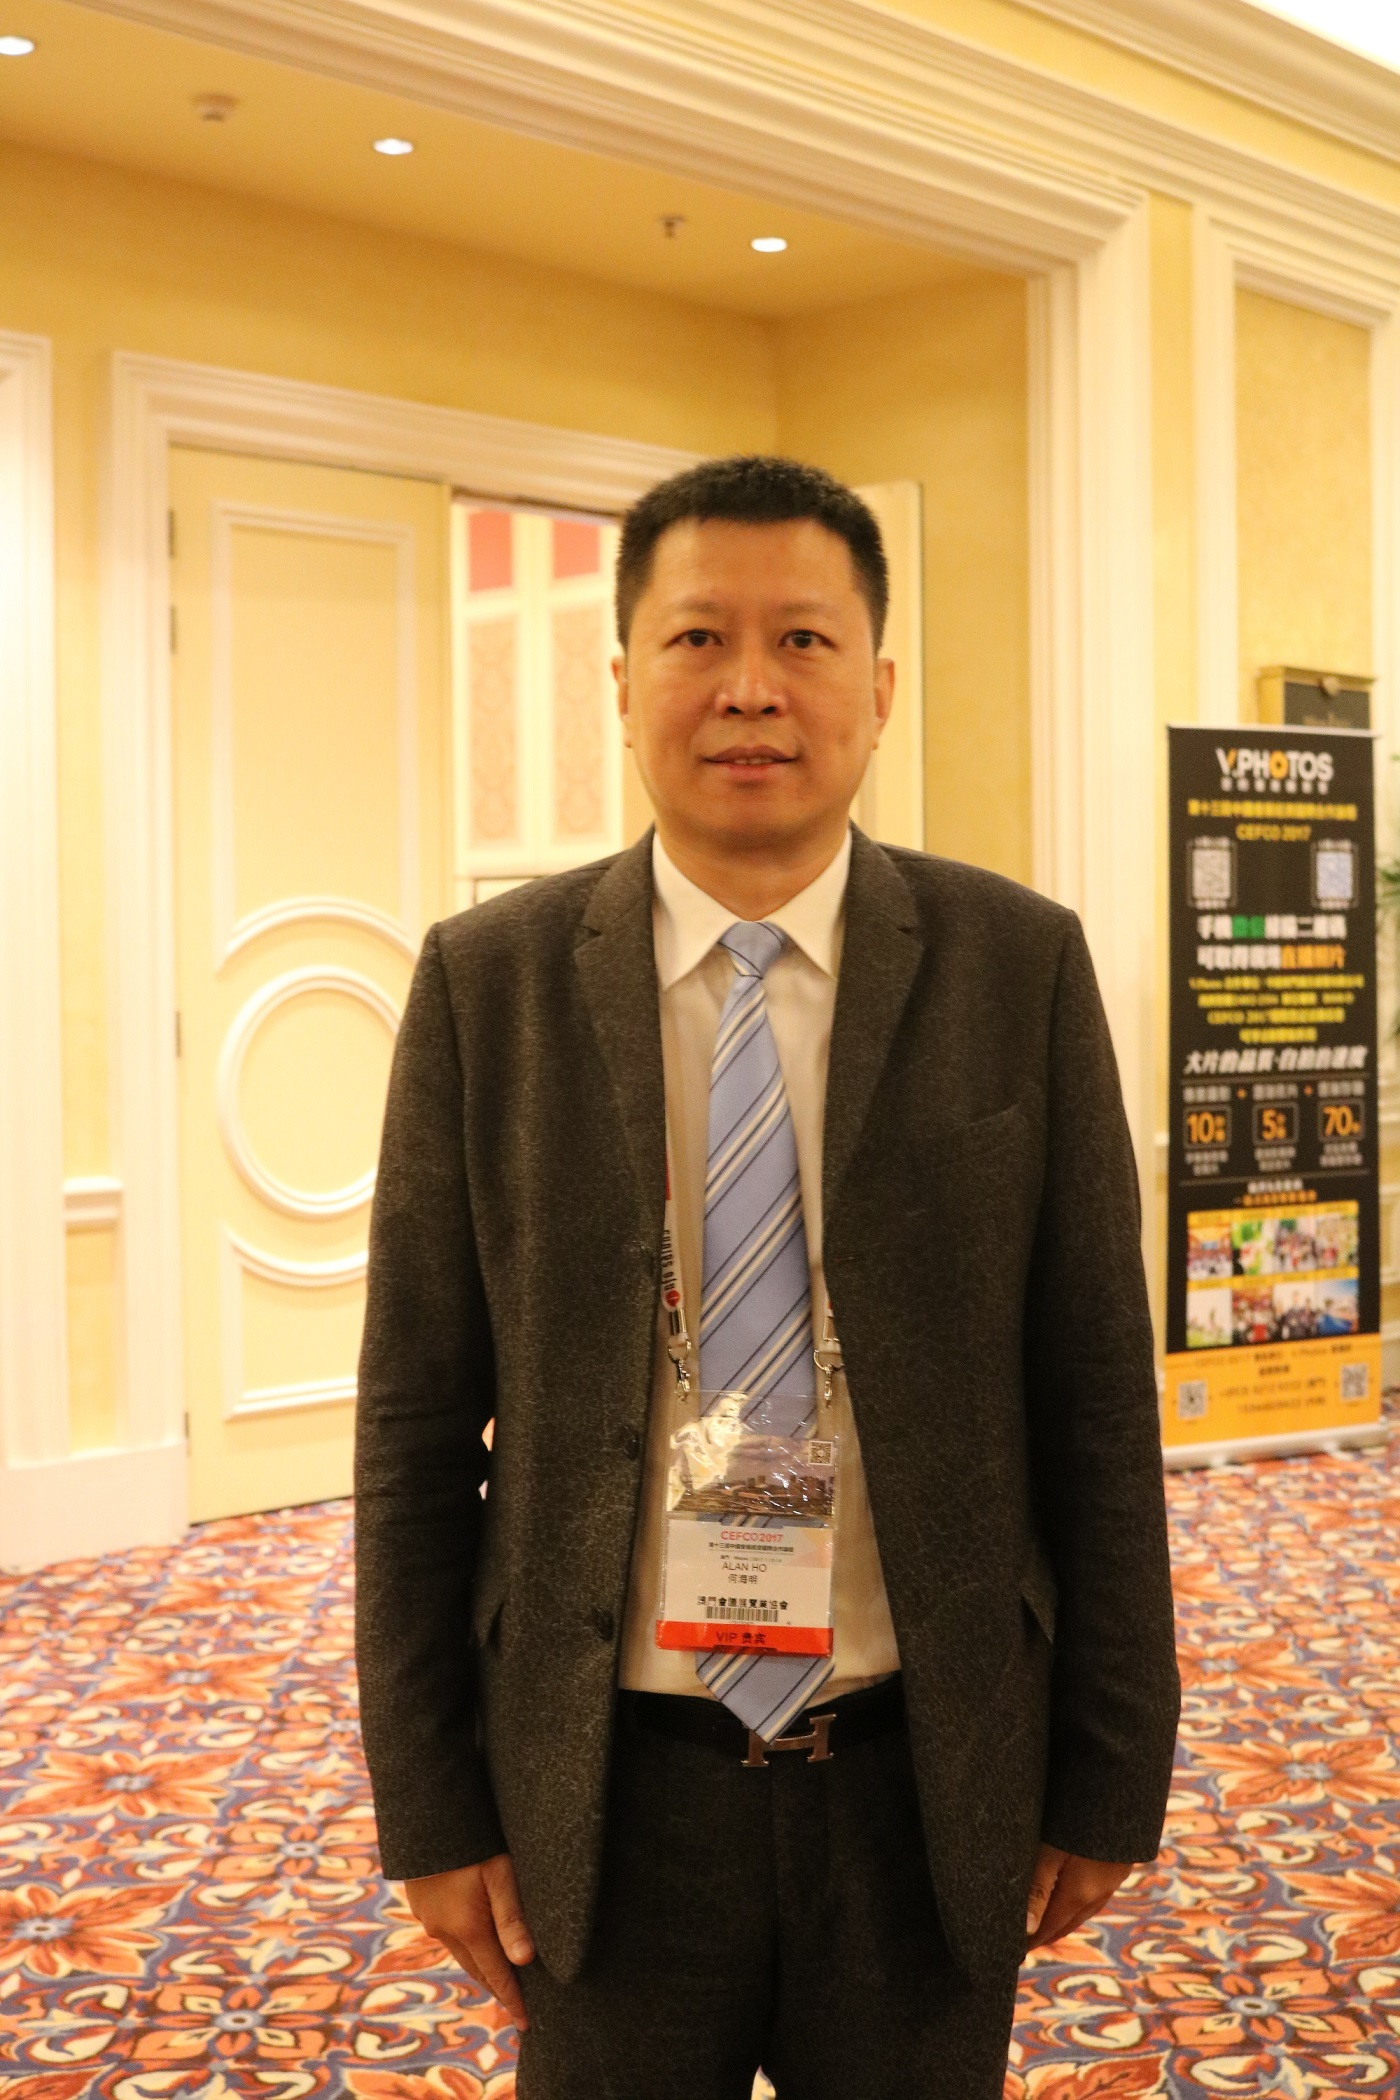 Mr. Alan Ho, Chairman of Board of Directors of Macau Convention & Exhibition Association